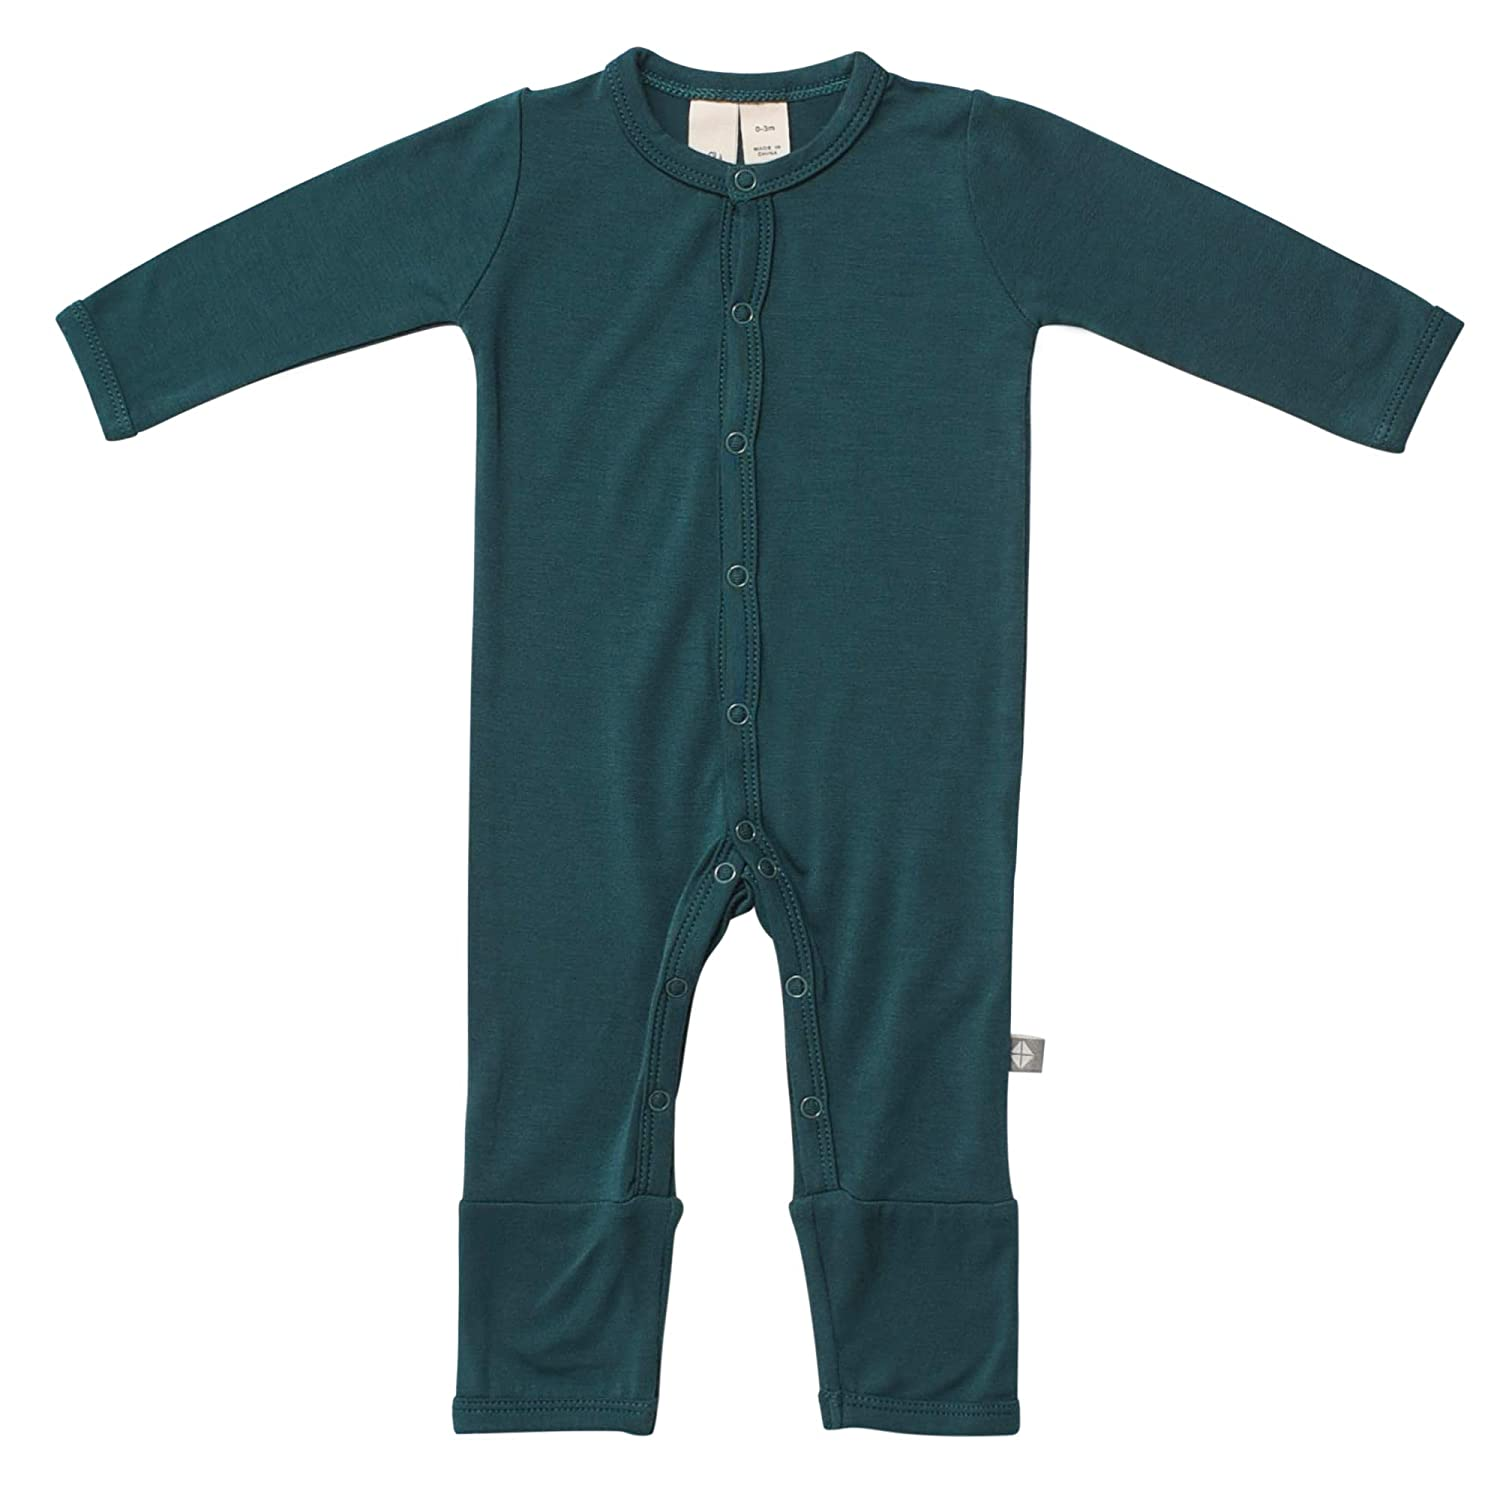 0-24 Months KYTE BABY Rompers 18-24 Months, Emerald Baby Footless Coveralls Made of Soft Organic Bamboo Rayon Material